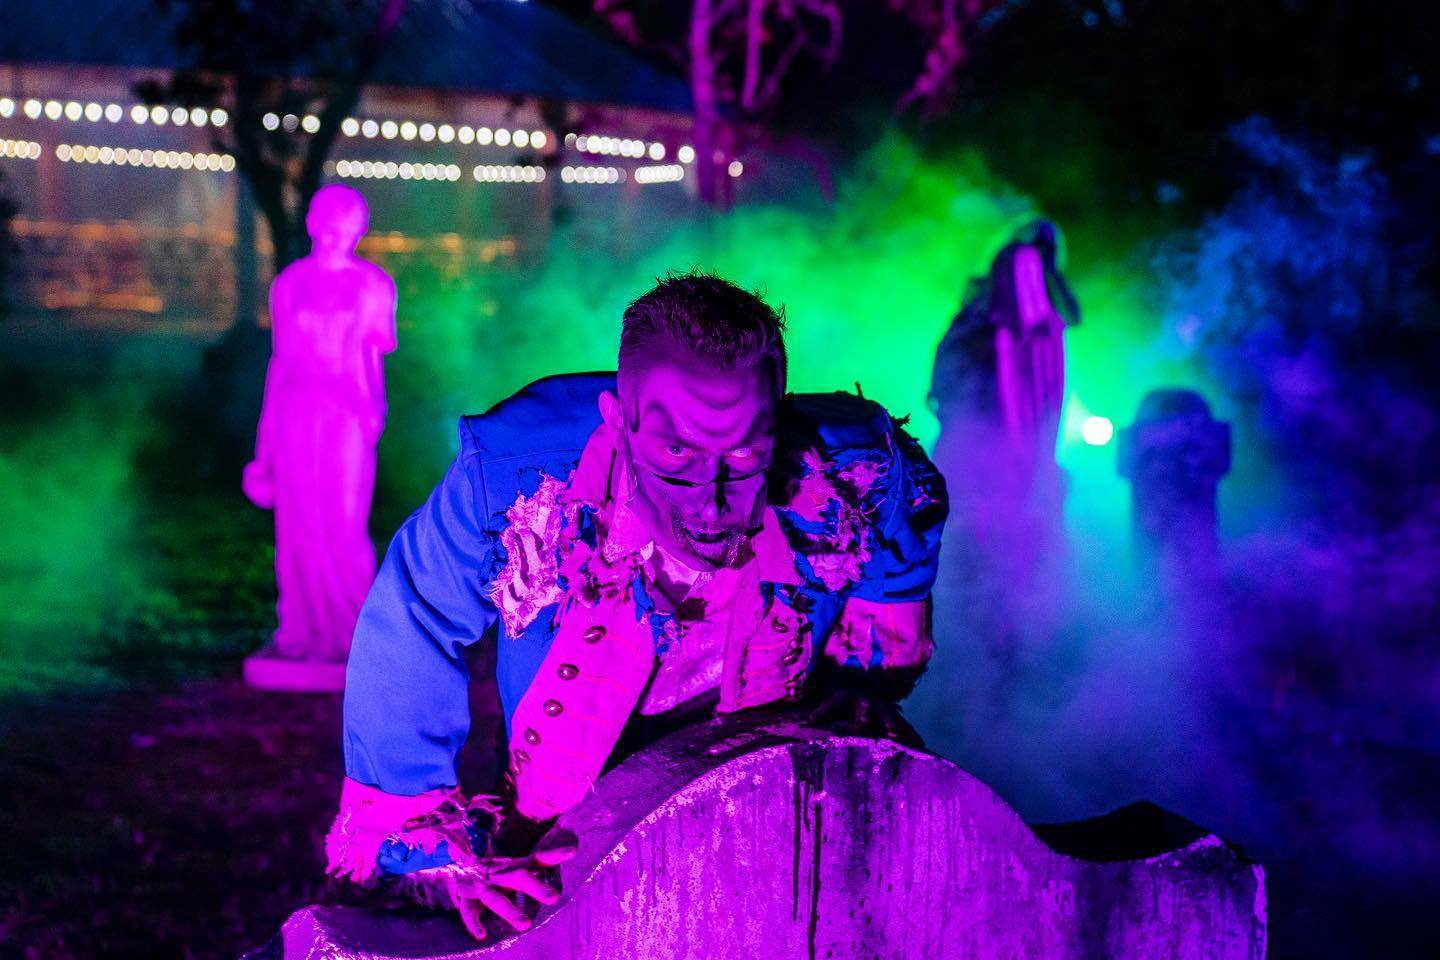 nj mom best haunted hayrides in nj haunted house in nj New Jersey